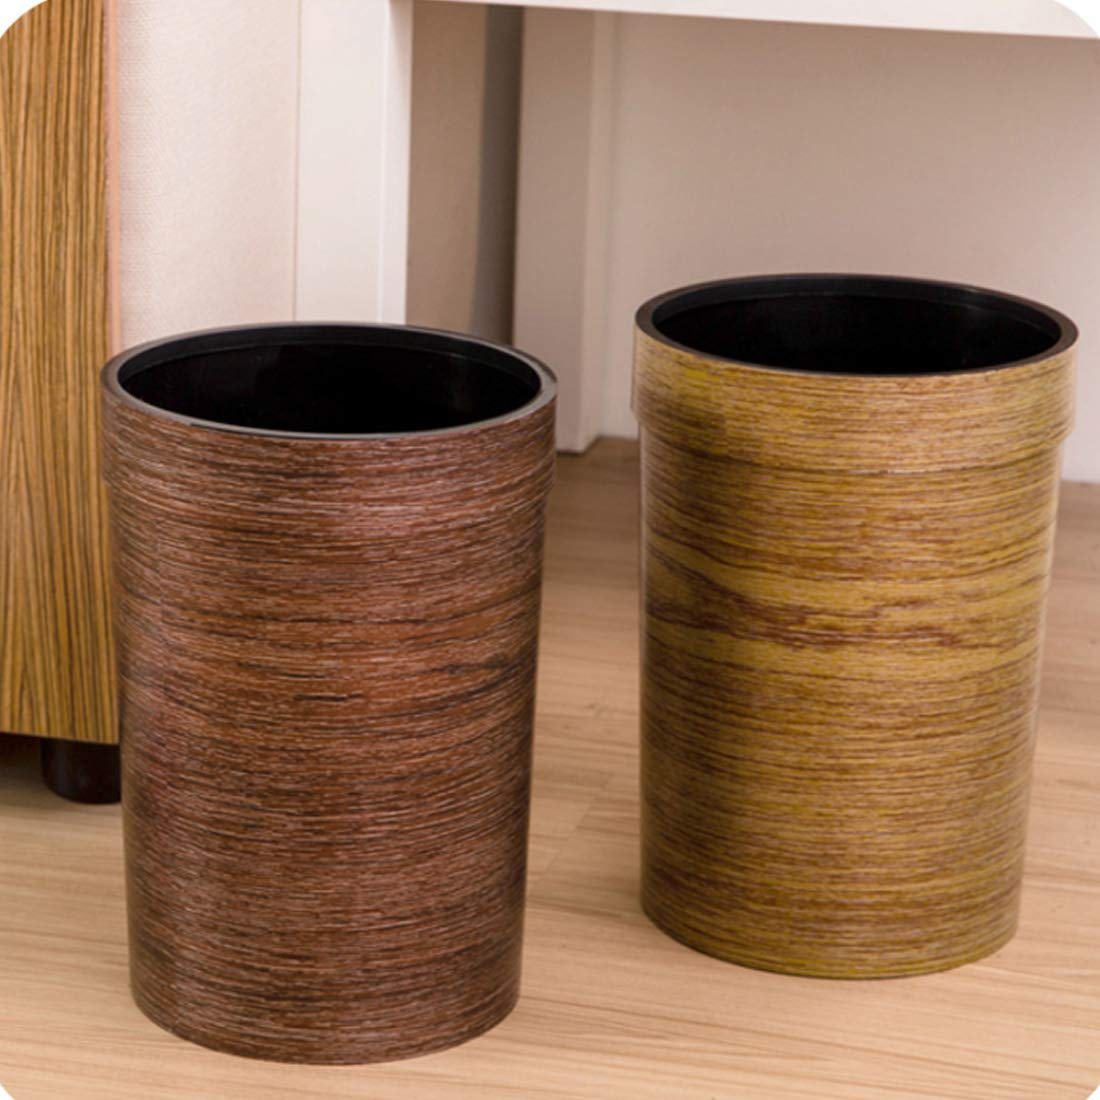 WOLFBUSH Trash Bin 9L Wood Grain Garbage Can Plastic Pressure Ring Waste Basket Without Lid (Coffee) by WOLFBUSH (Image #4)